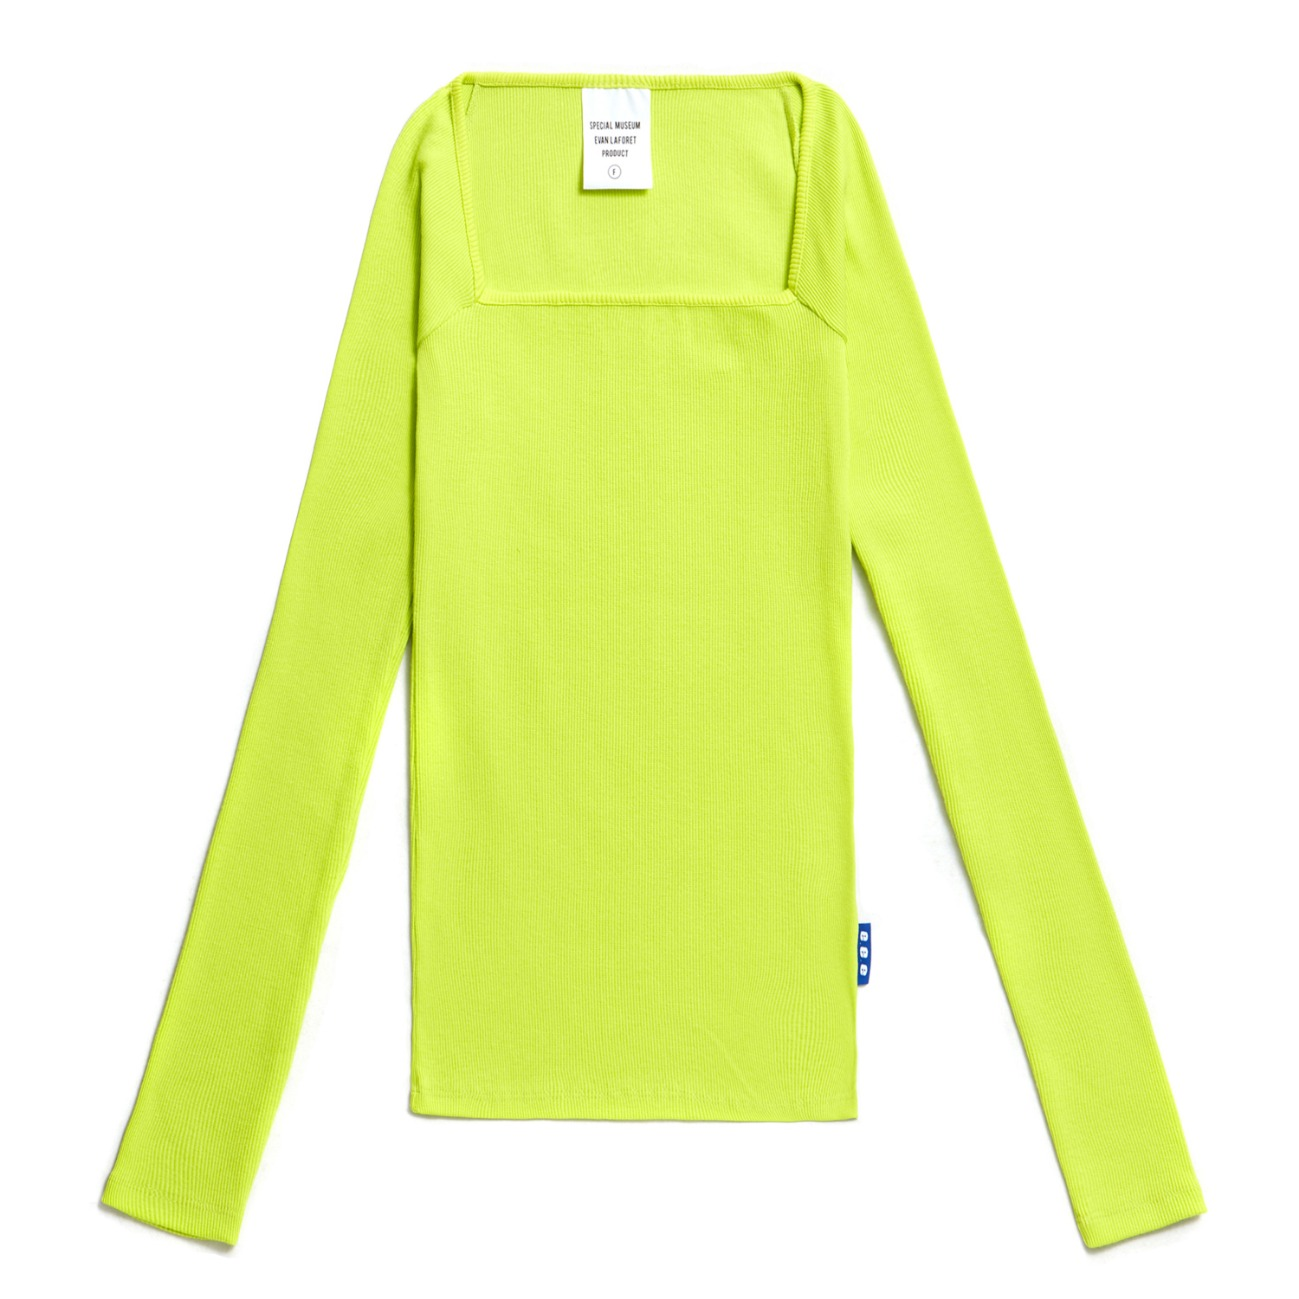 EVAN SQUARE NECK  T-SHIRTS LIME